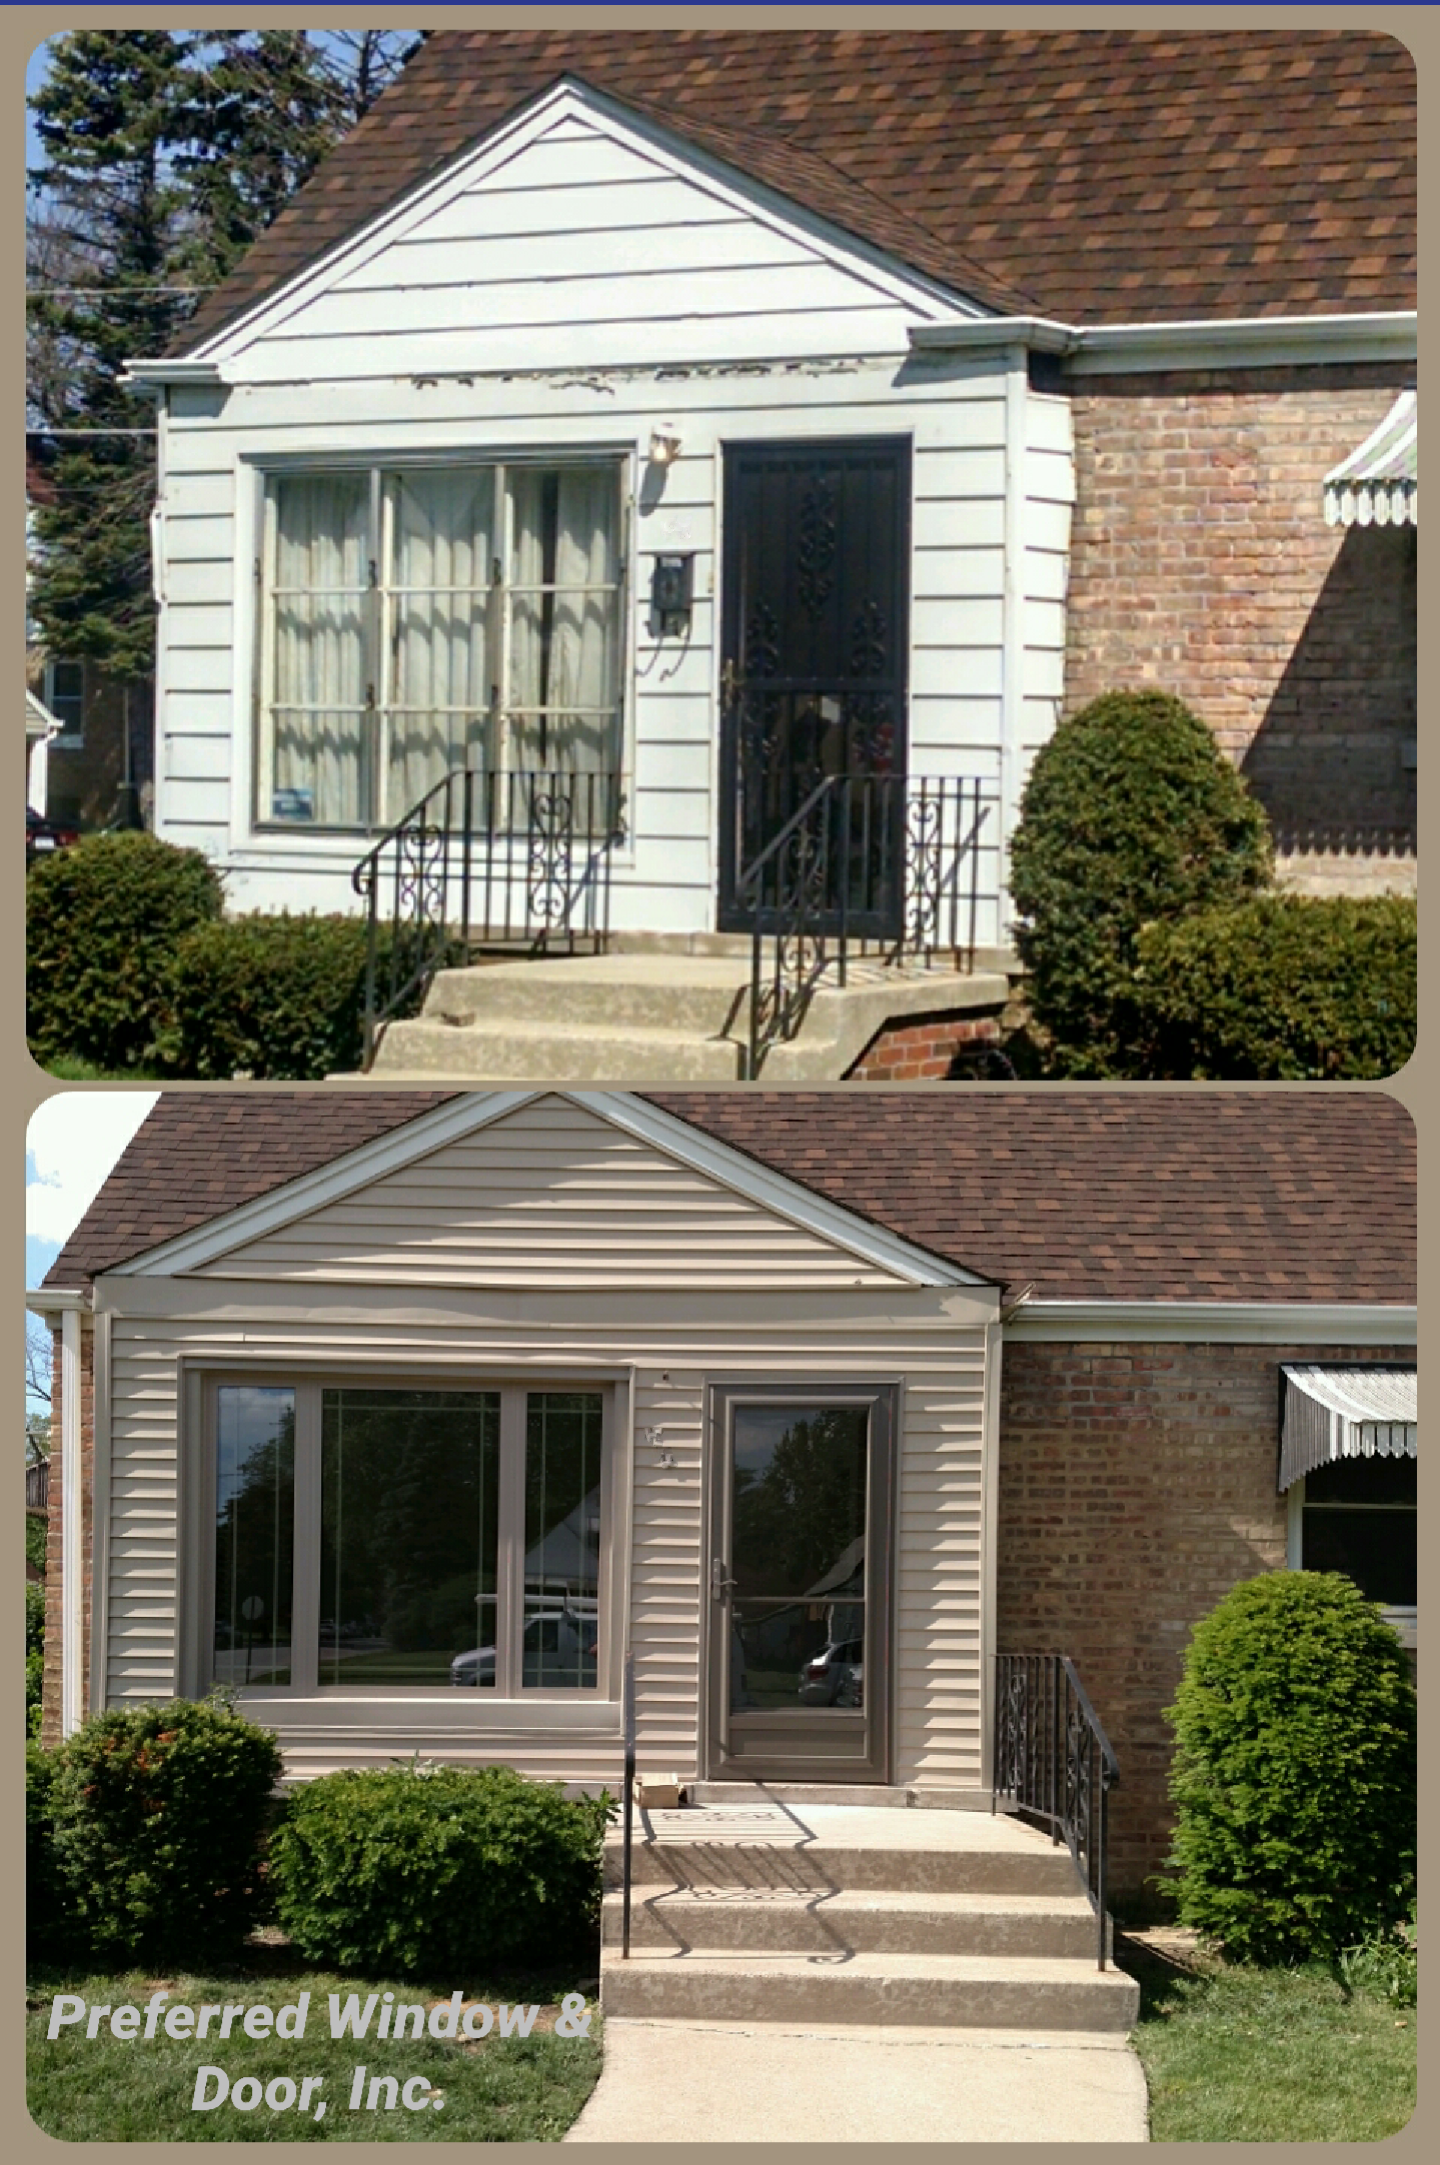 Give Your Home A Facelift! Call Preferred Window And Door At 708 895